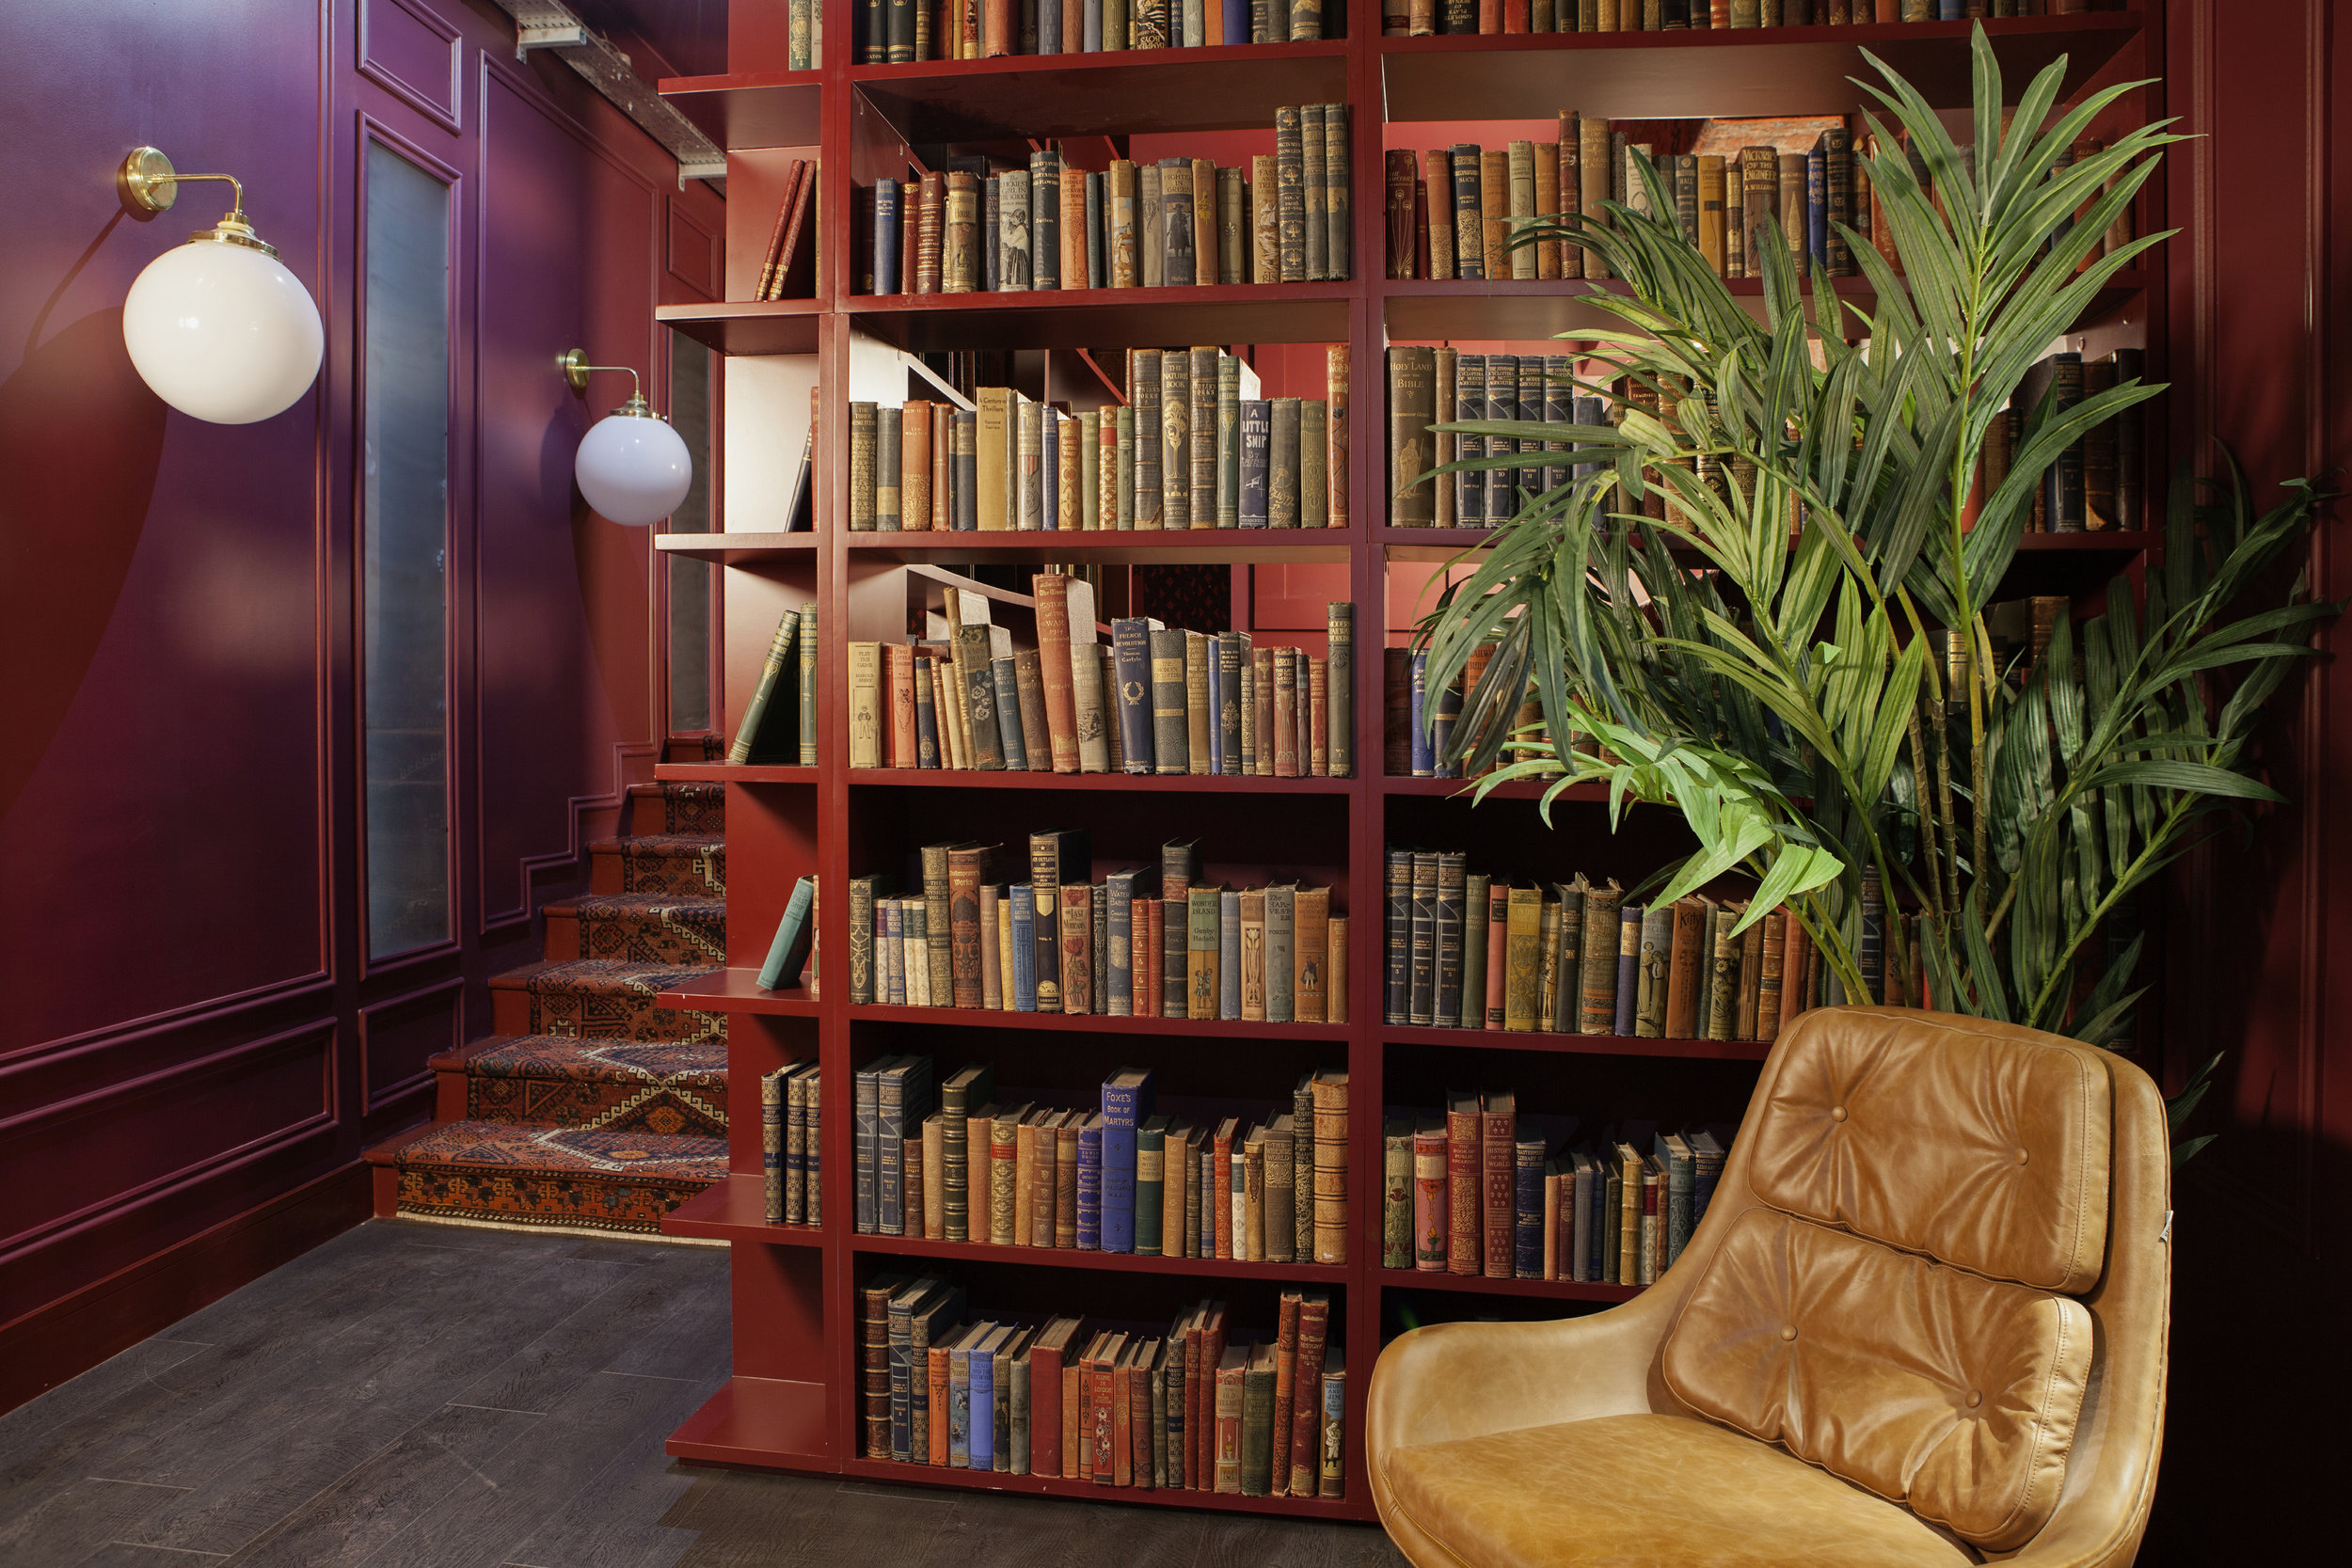 As chief curator for his spaces, which incorporate a lot of libraries, McGinley spends a lot of time sourcing vintage books from rare book dealers in London. The South Point library is a favorite for its whiskey selection.